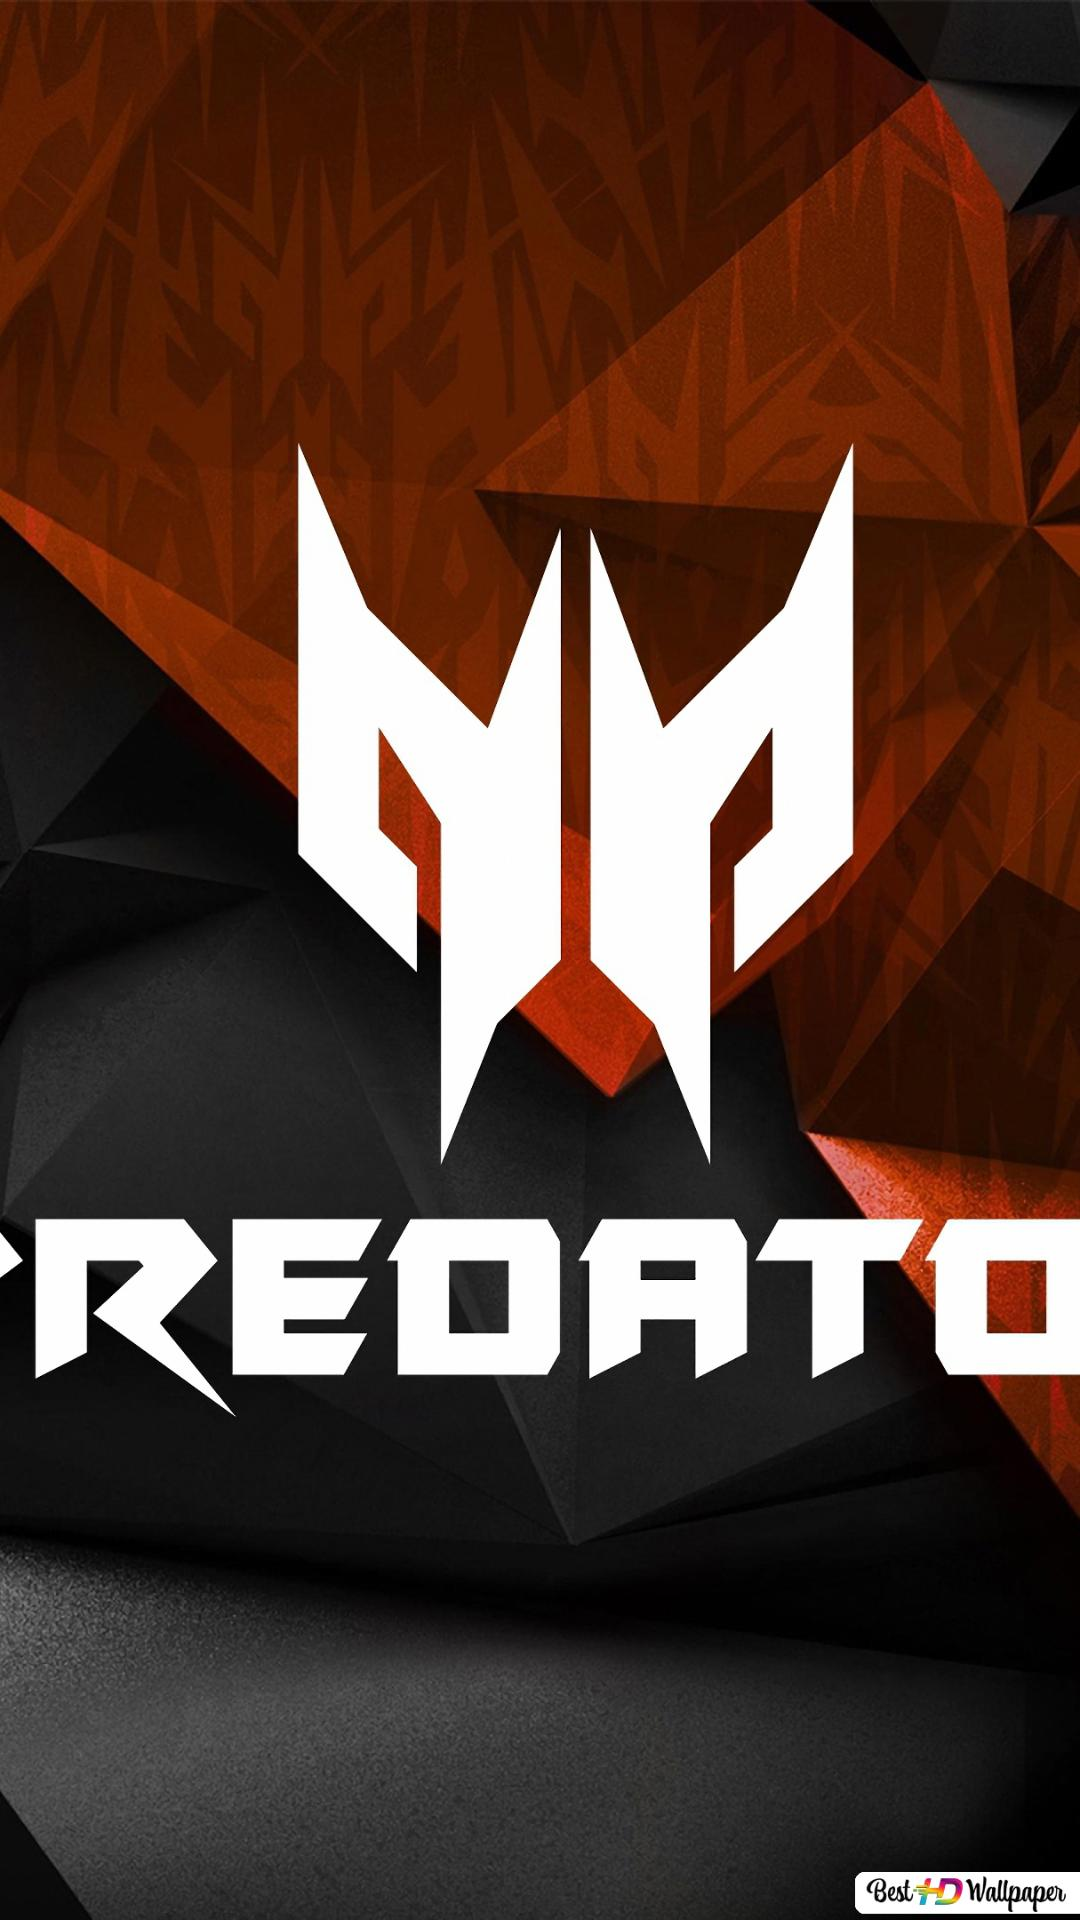 Acer Predator Logo Hd Wallpaper Download